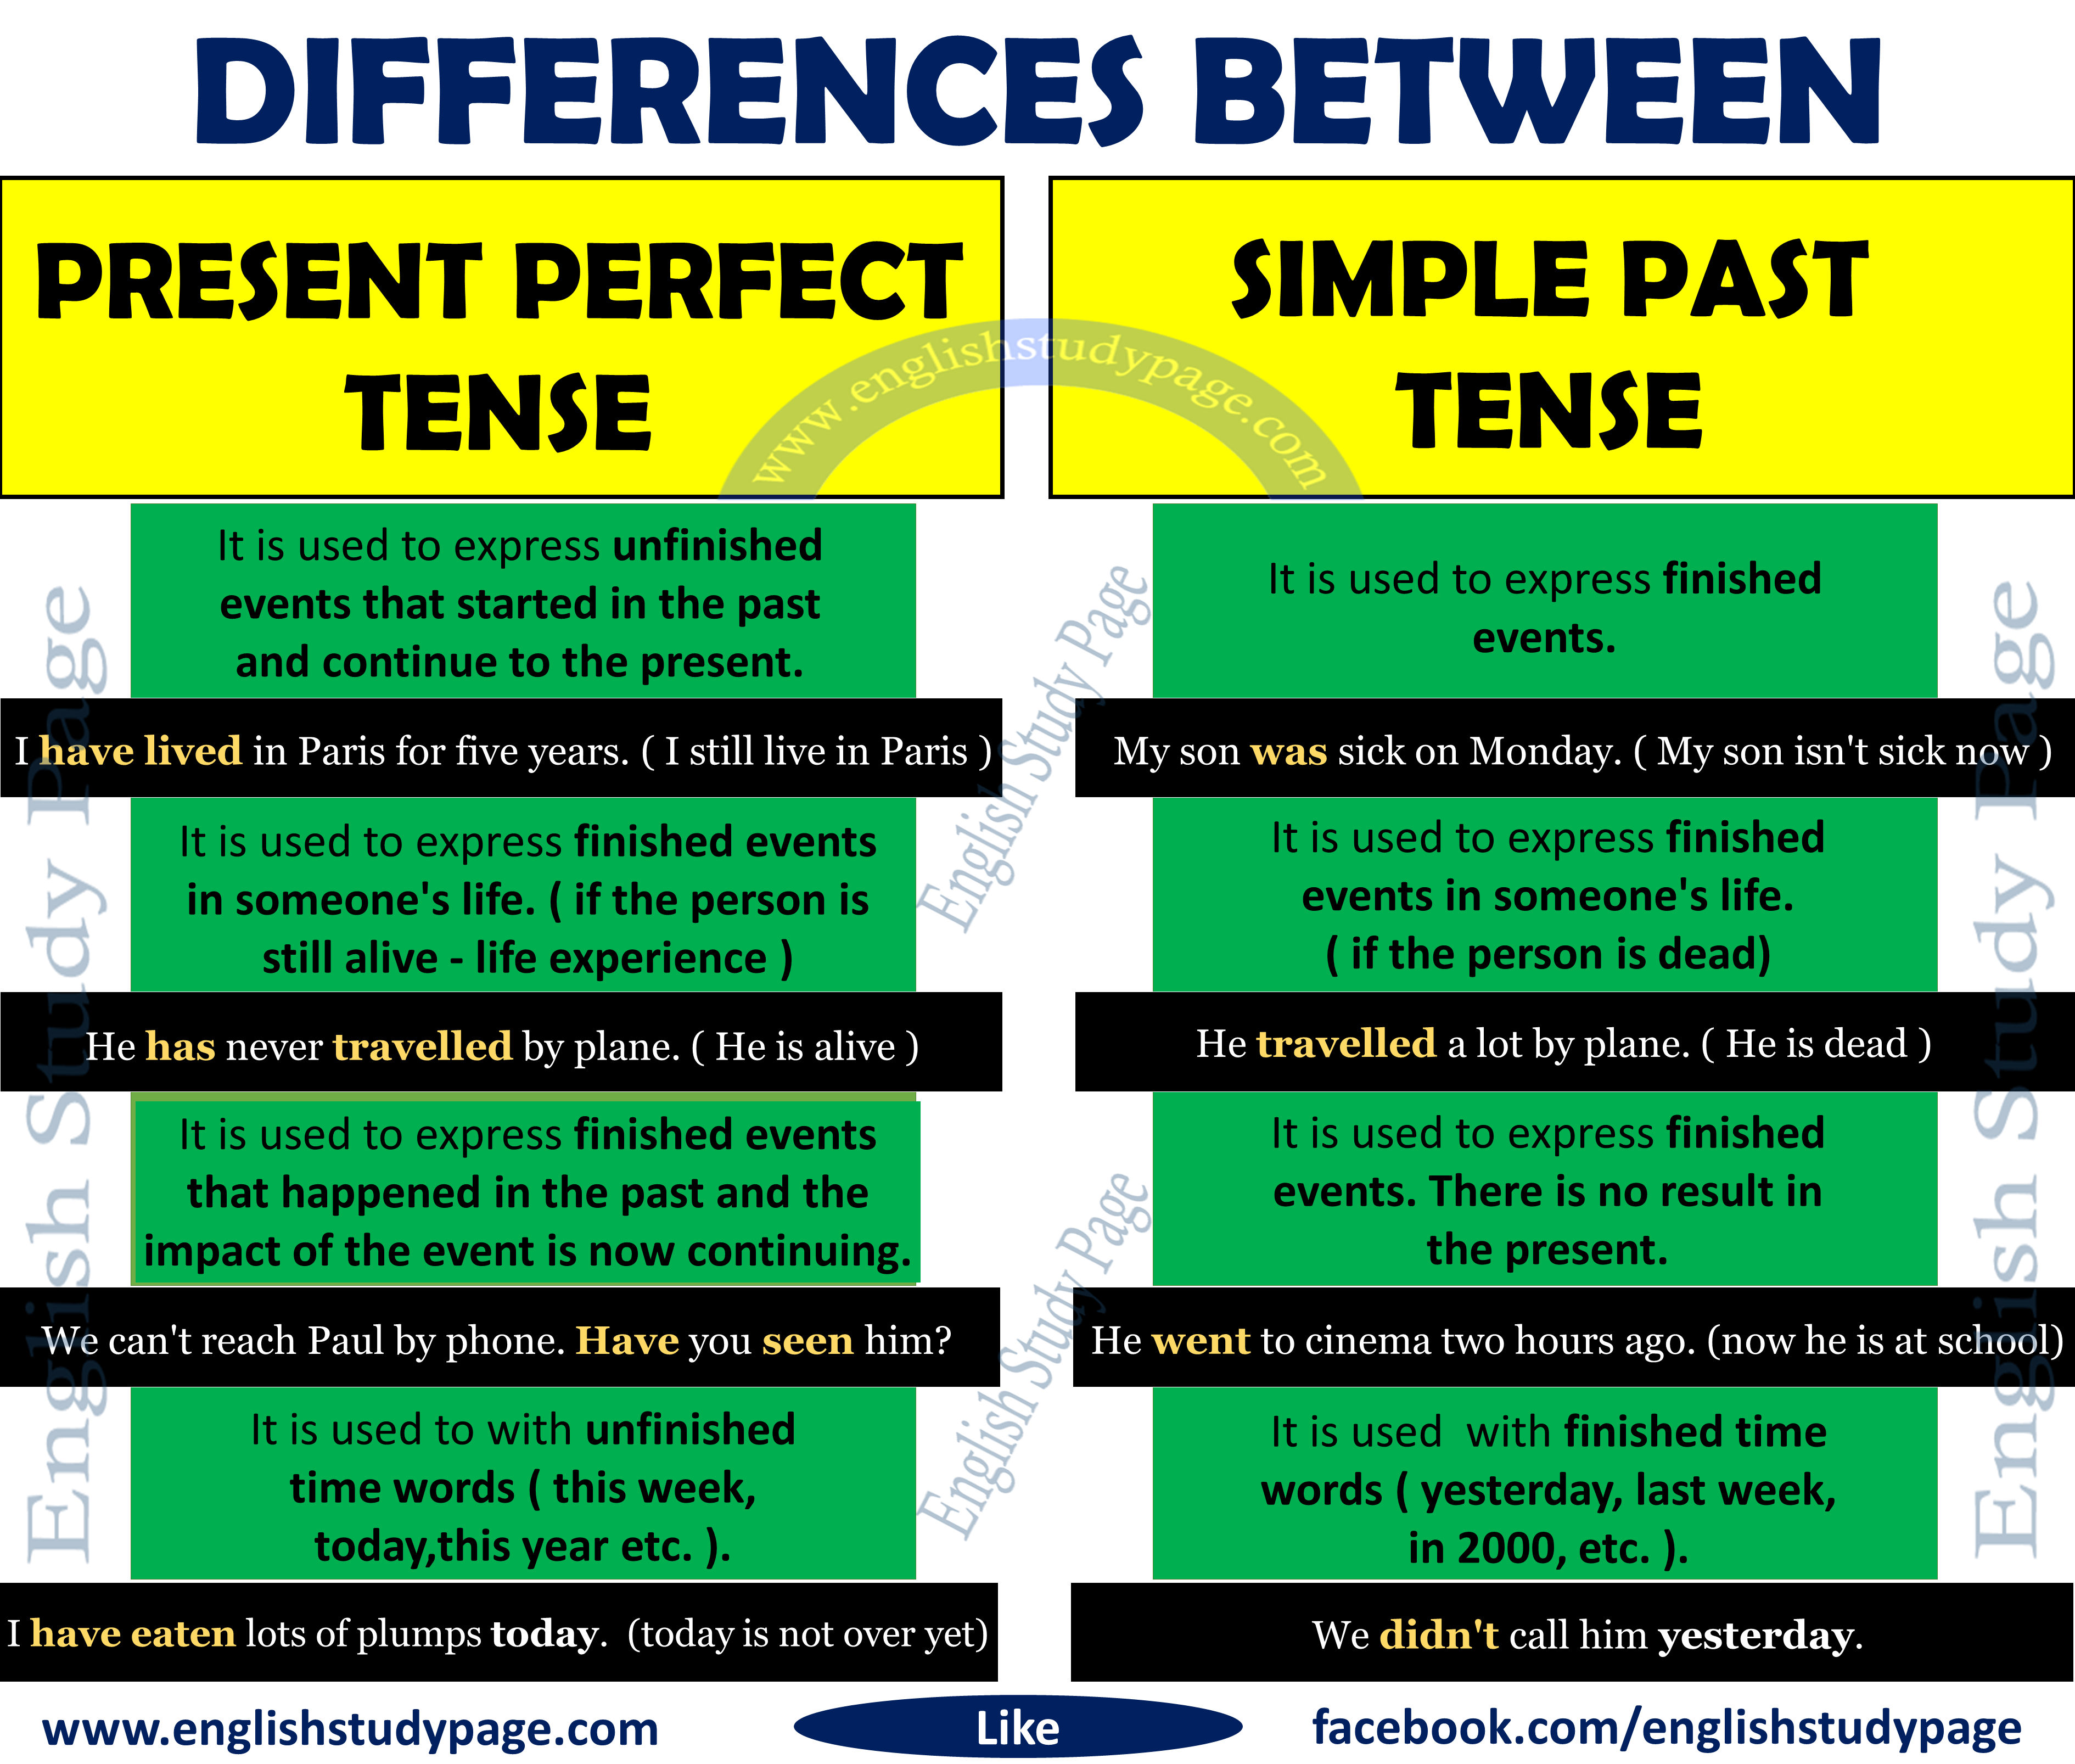 Differences Between Present Perfect Tense And Simple Past